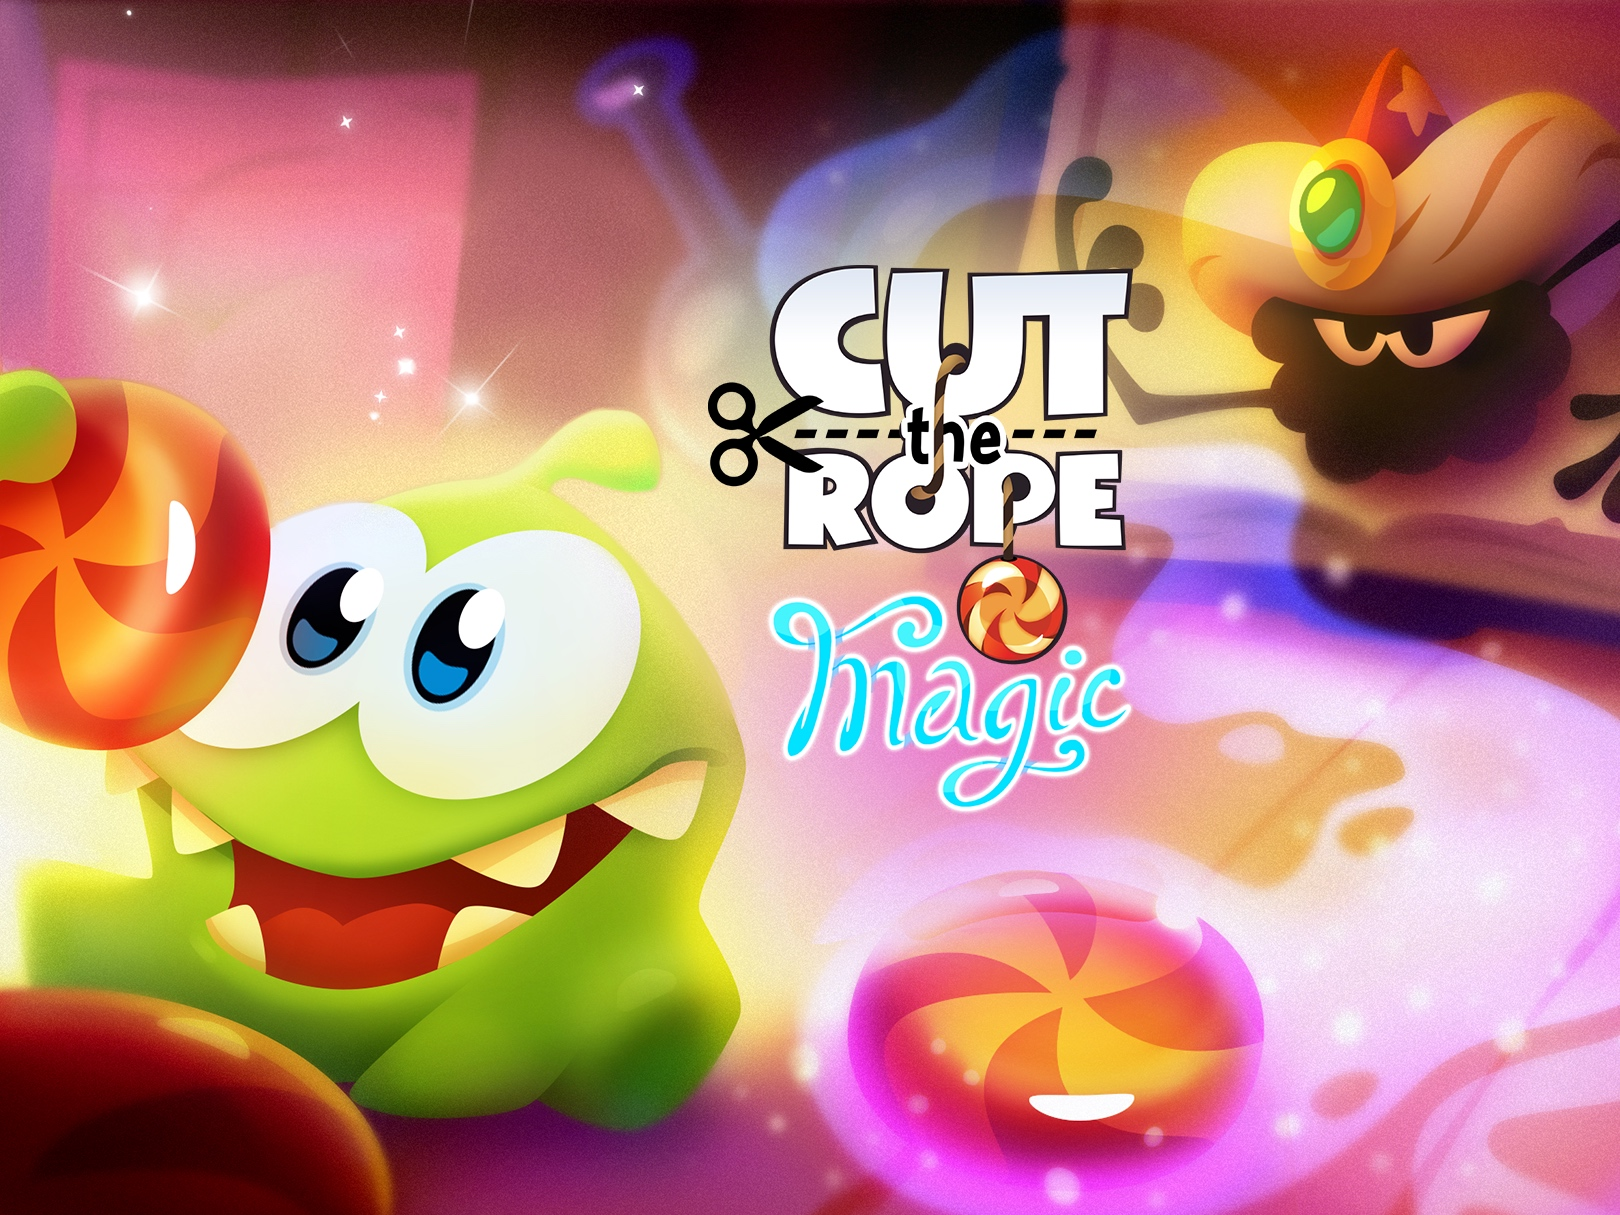 Abracadabra! Om Nom is back in Cut the Rope: Magic, out now on iOS